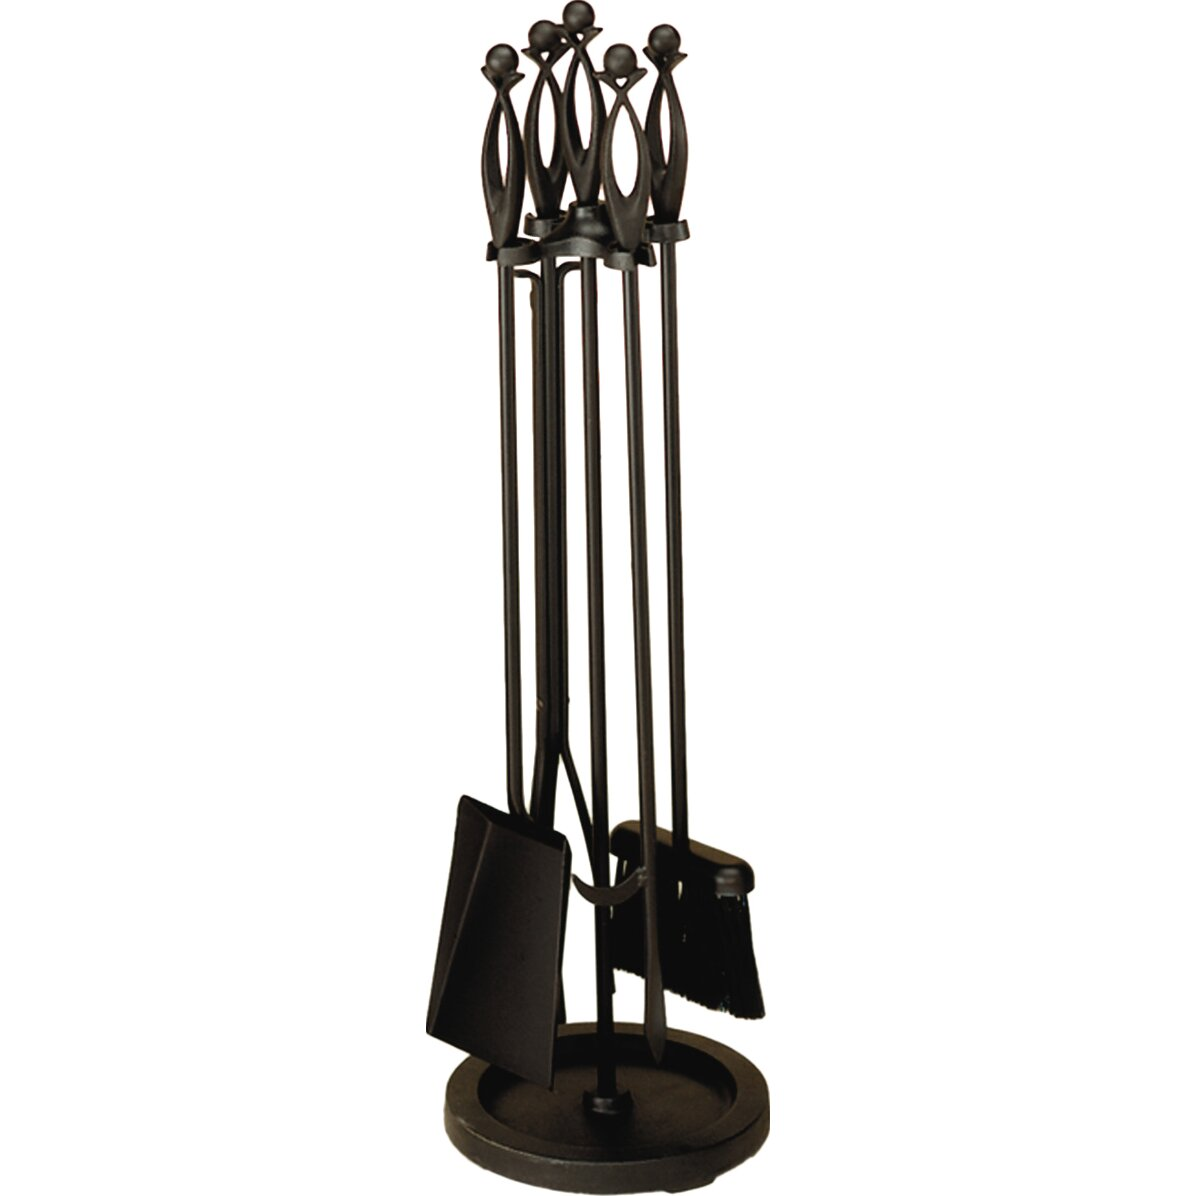 Minuteman 4 Piece Wrought Iron Fireplace Tool Set Reviews Wayfair